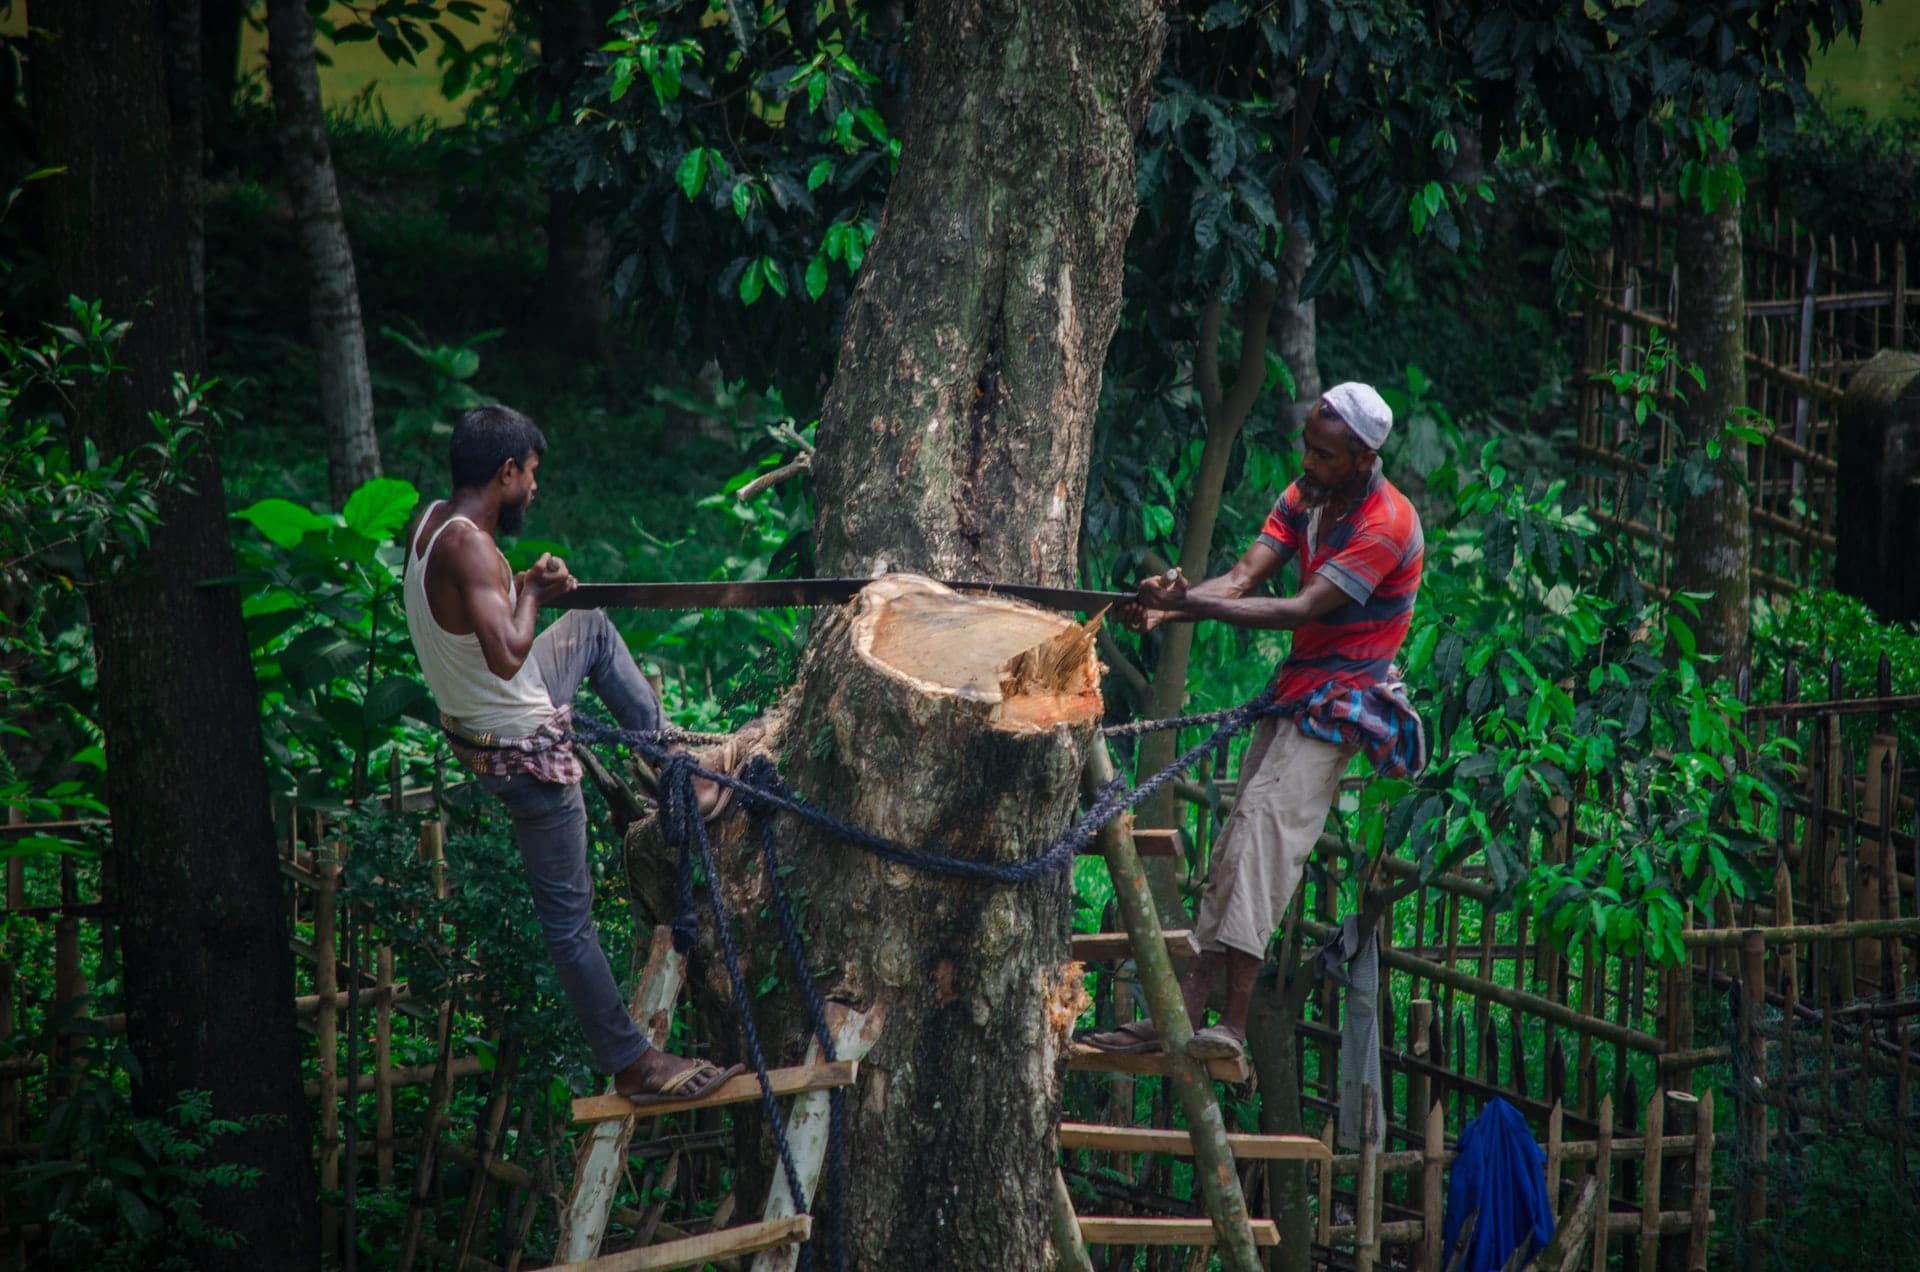 Finance News - Chinese Banks Accused of Deforestation Funding